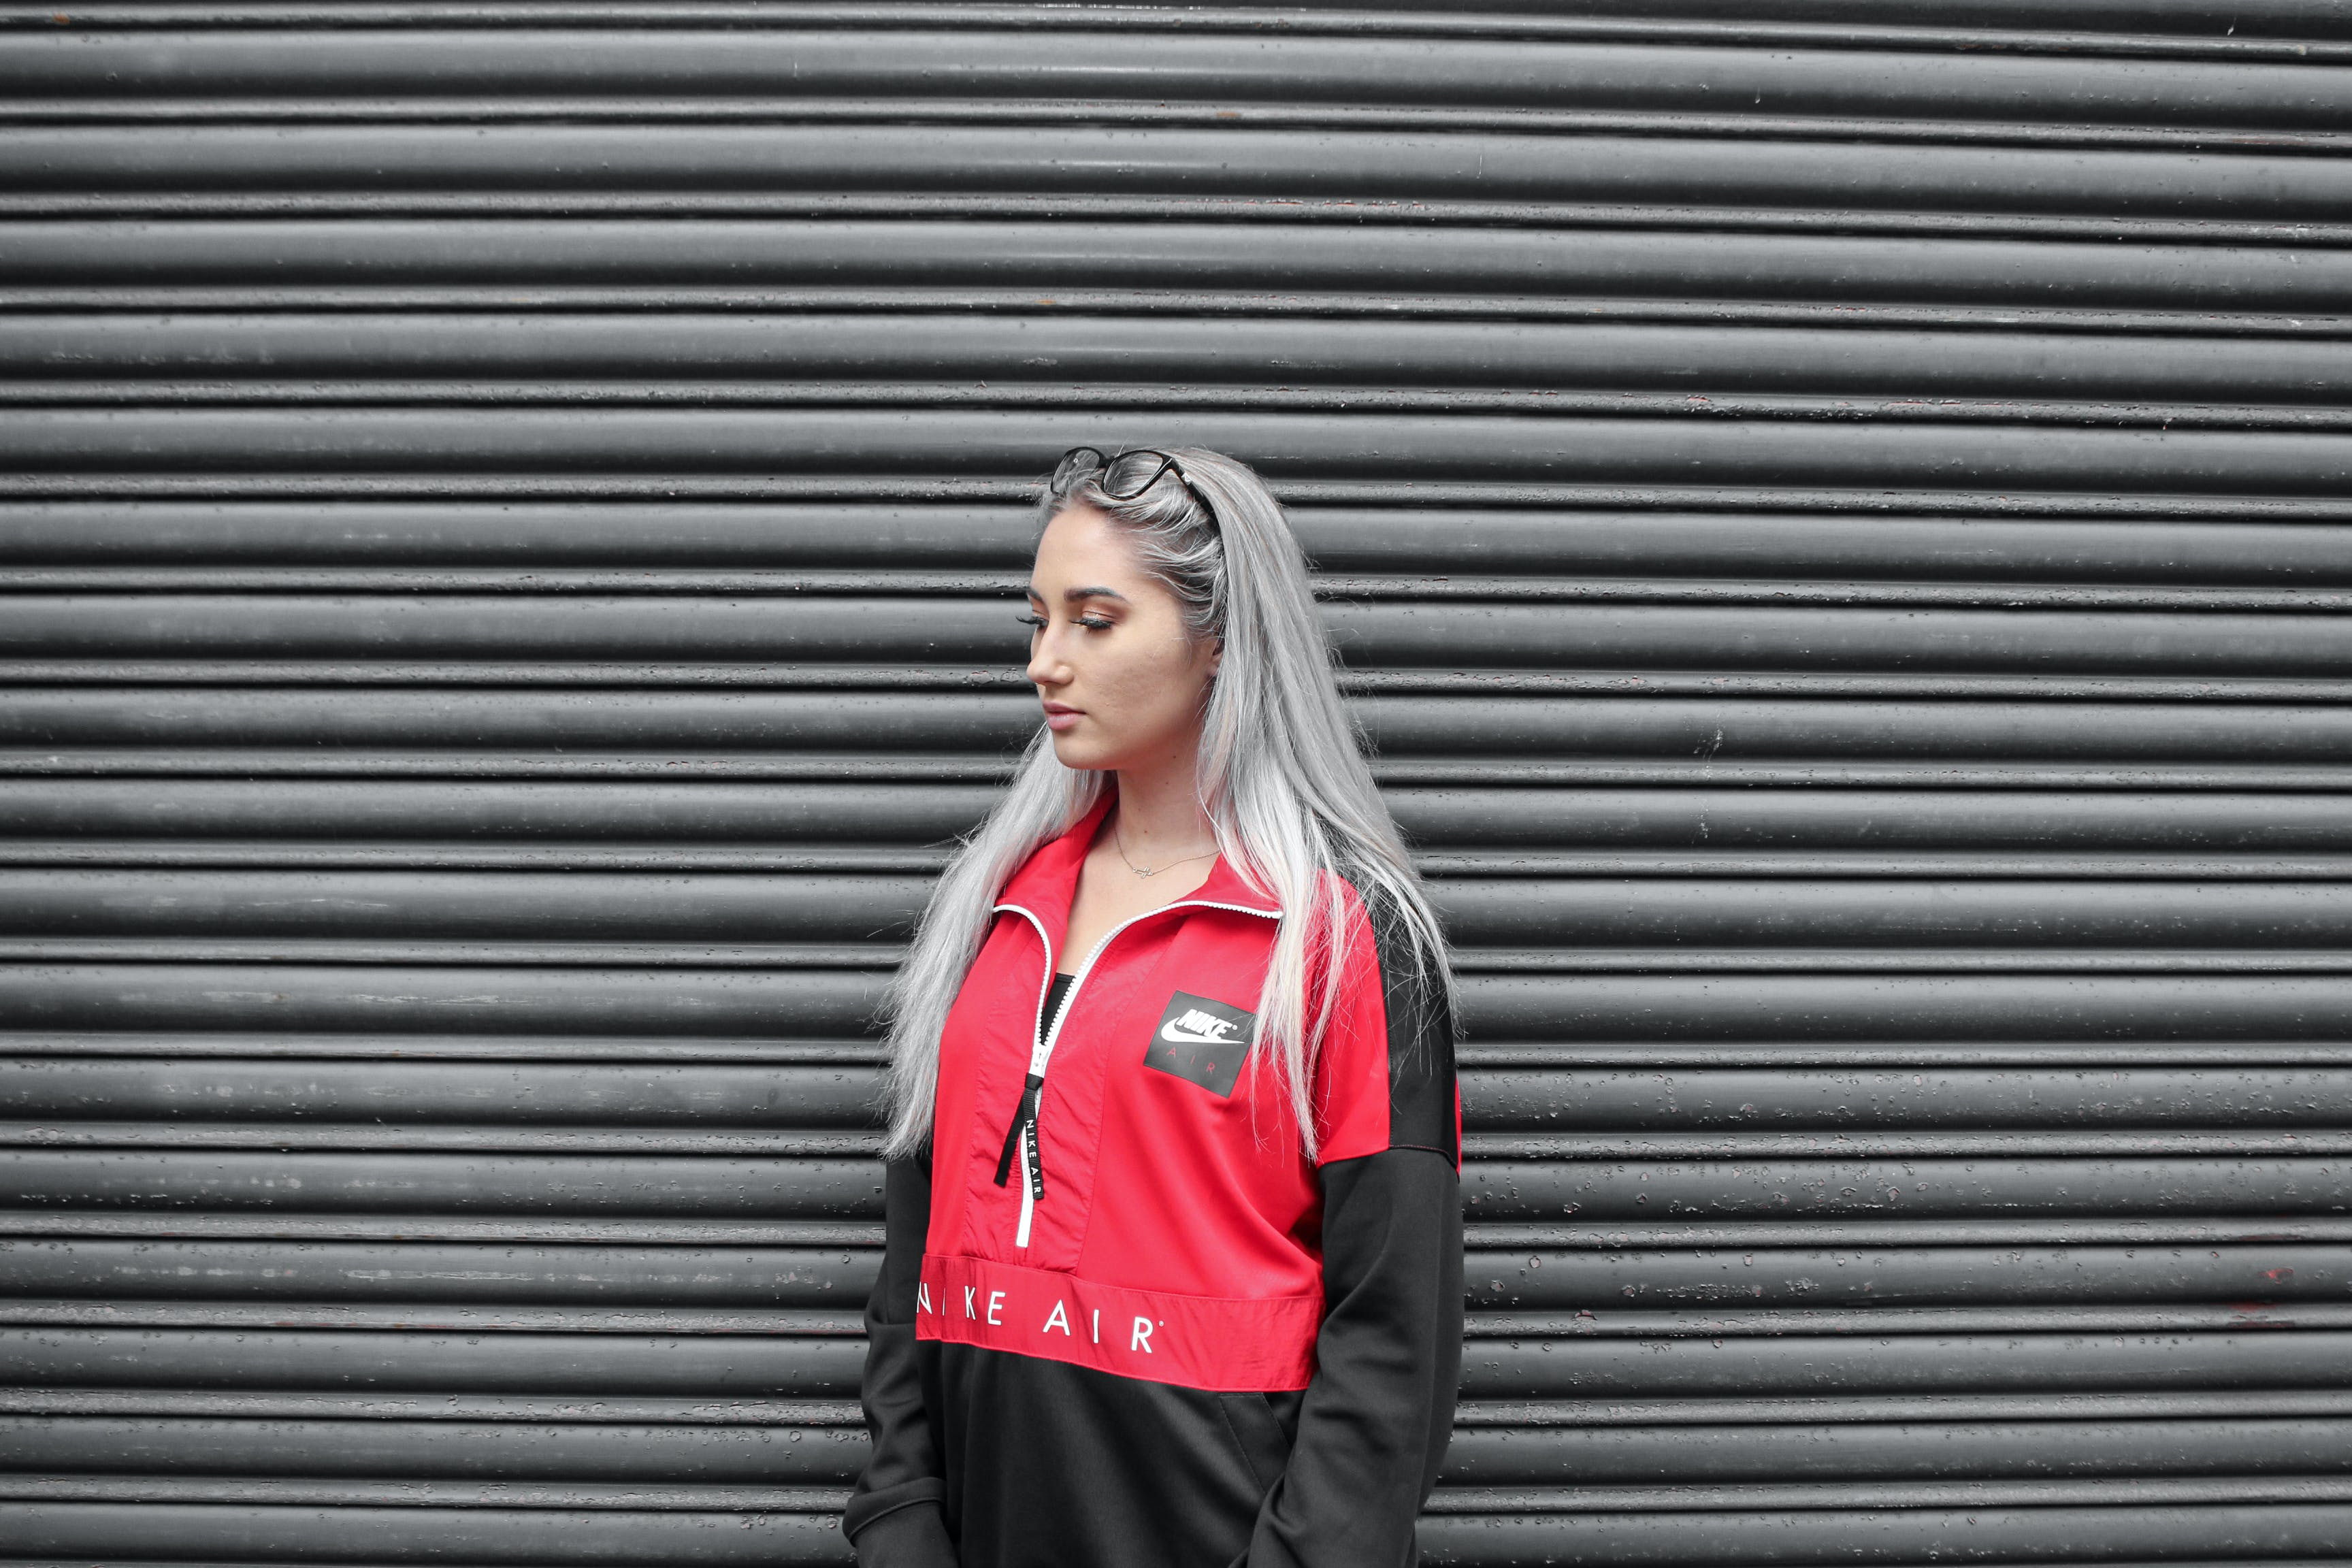 Woman In Black And Red Jacket